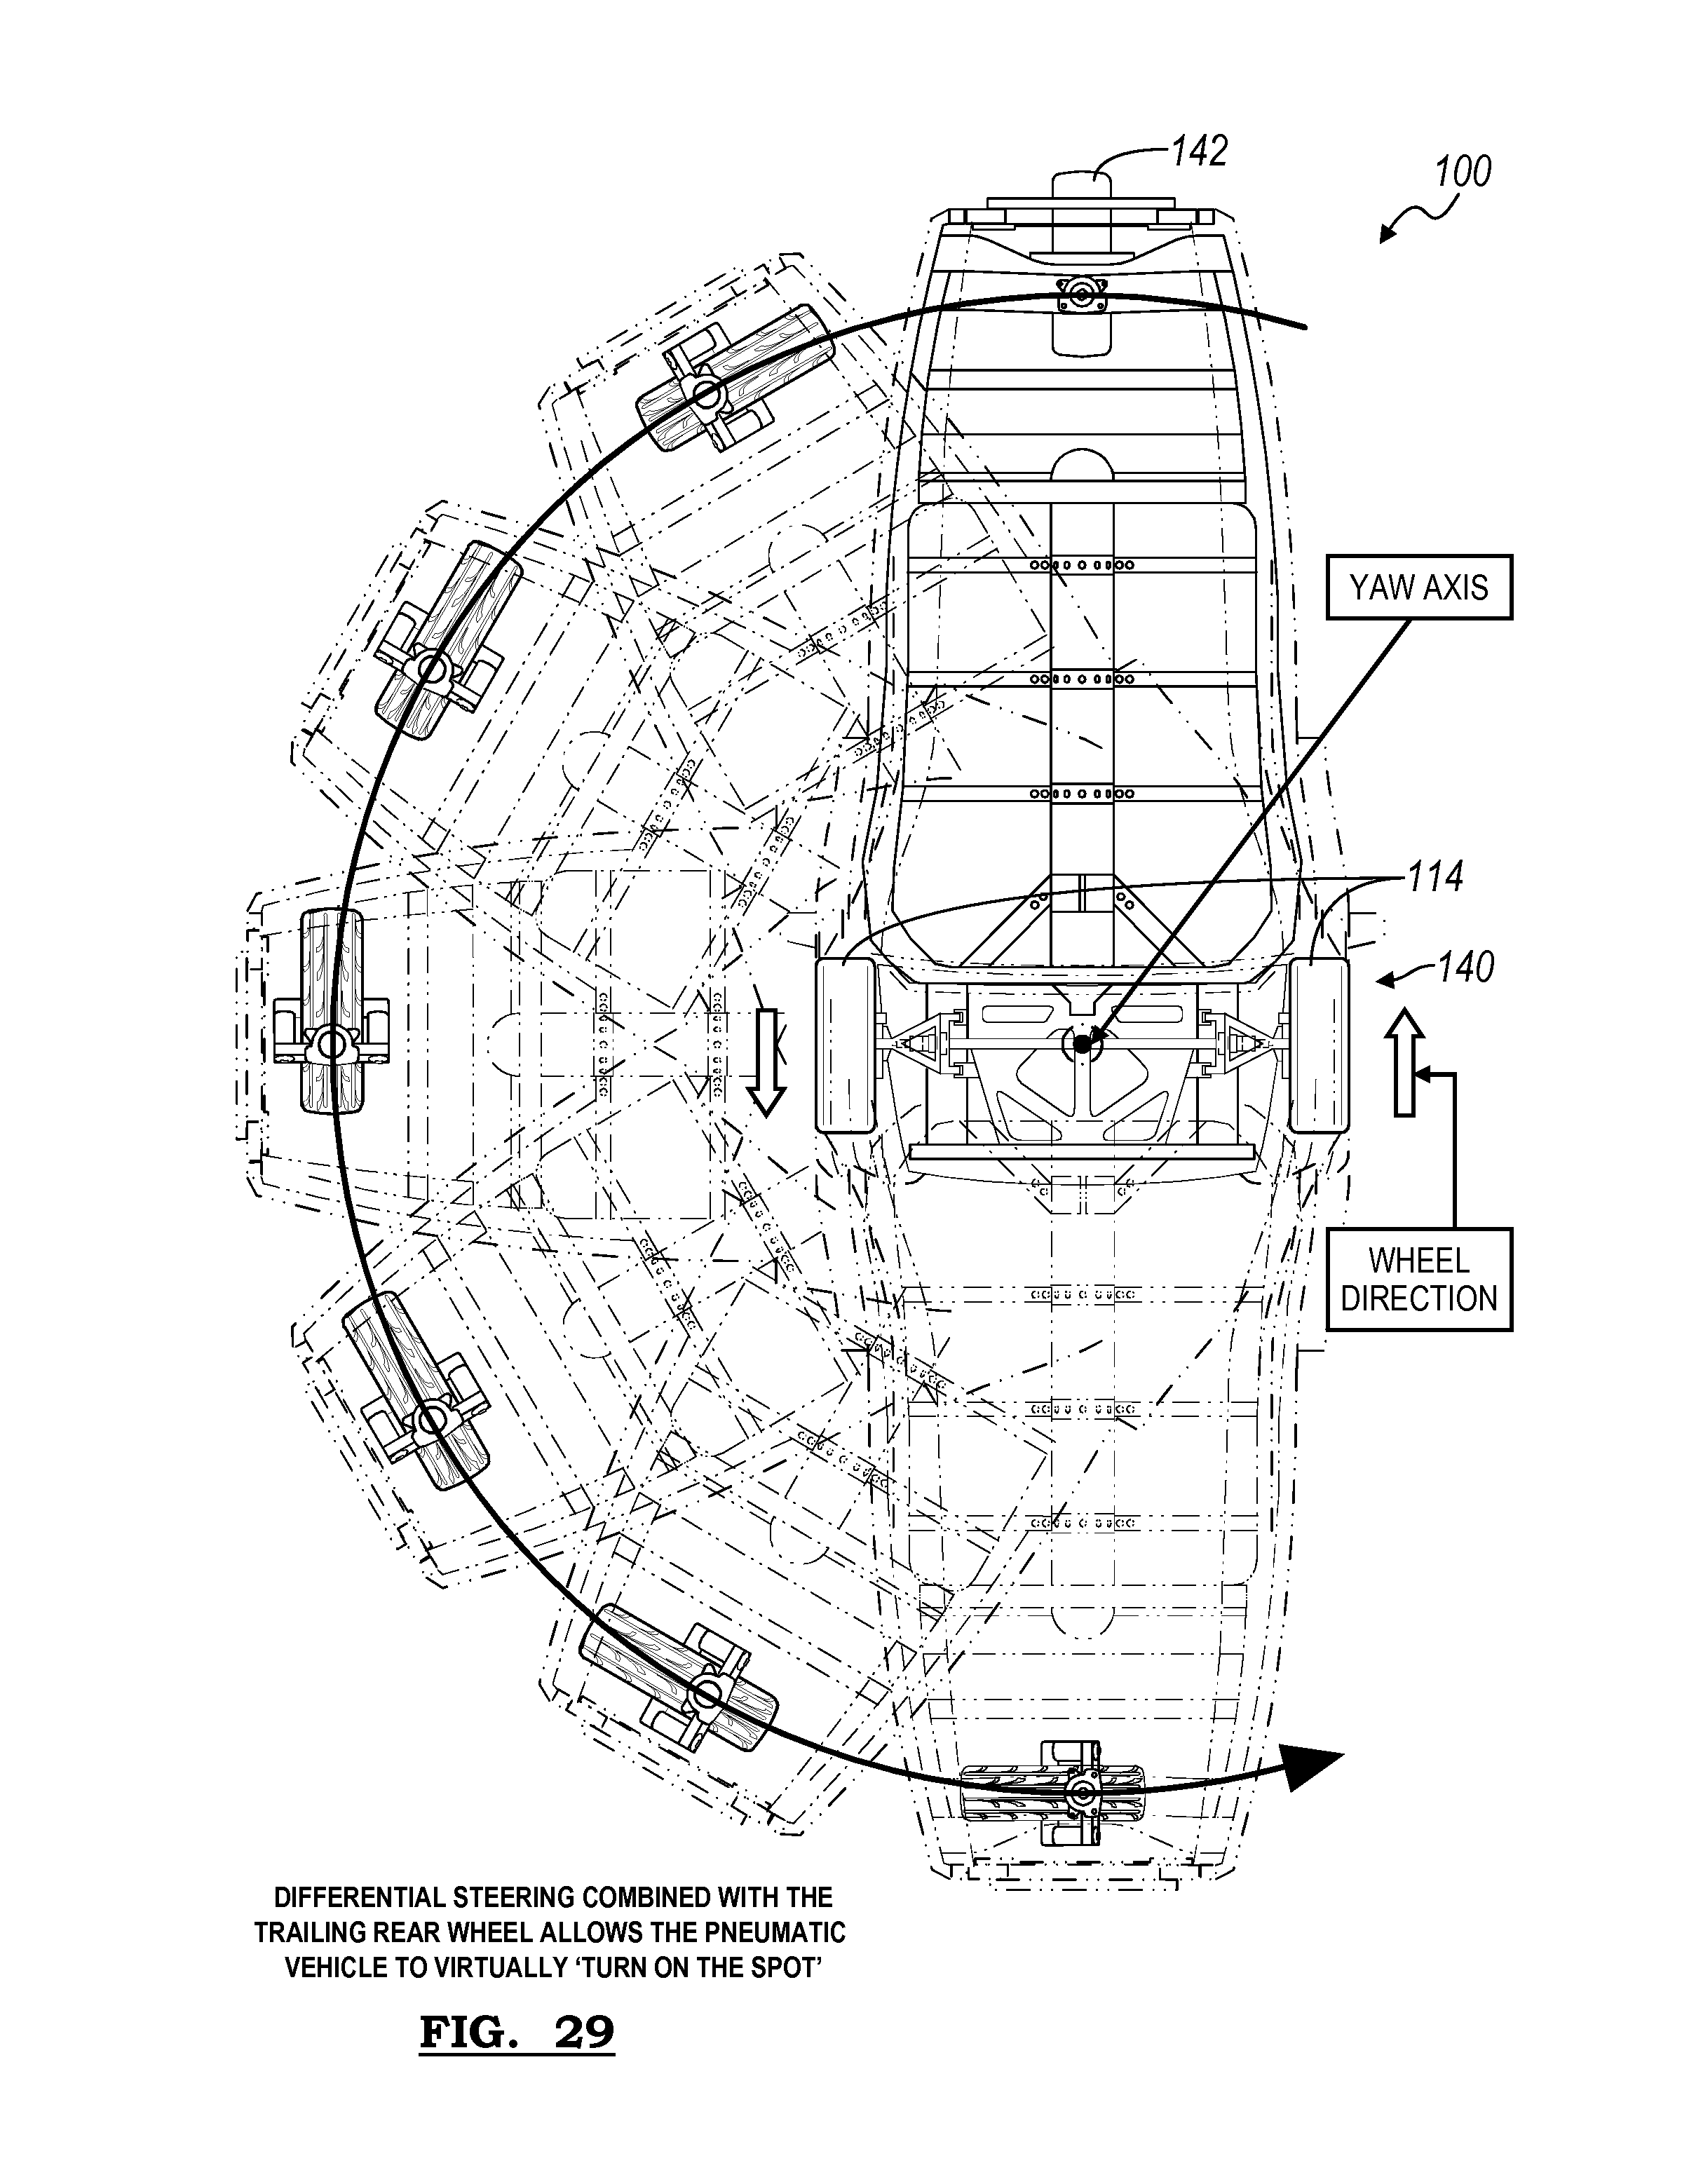 patente us20100078245 chassis for pneumatic vehicle 292 Y-Block Carb patent drawing